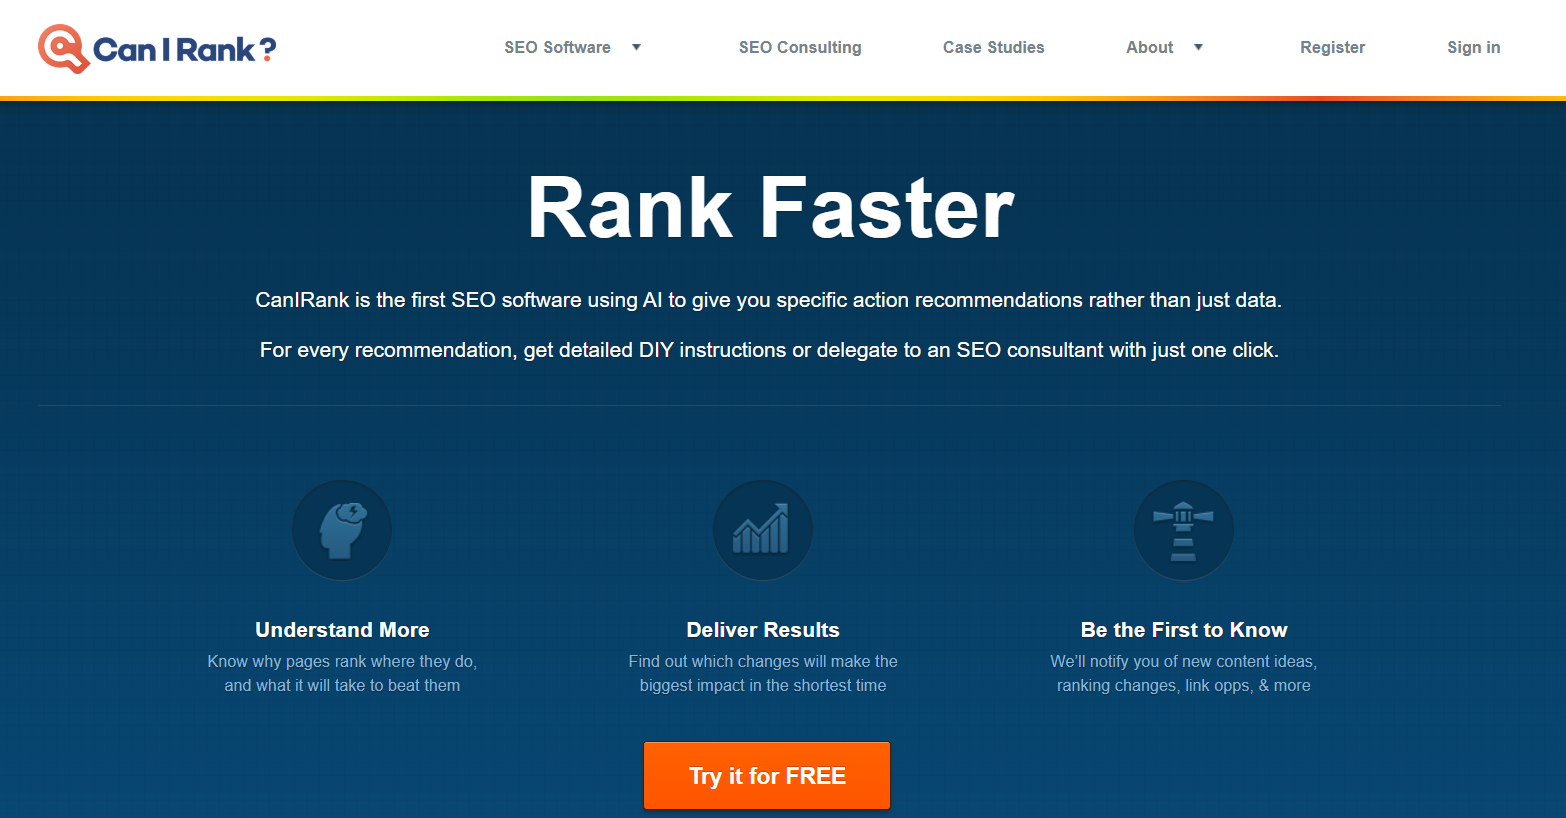 CanIRank Review- Best SEO Software for Small Business